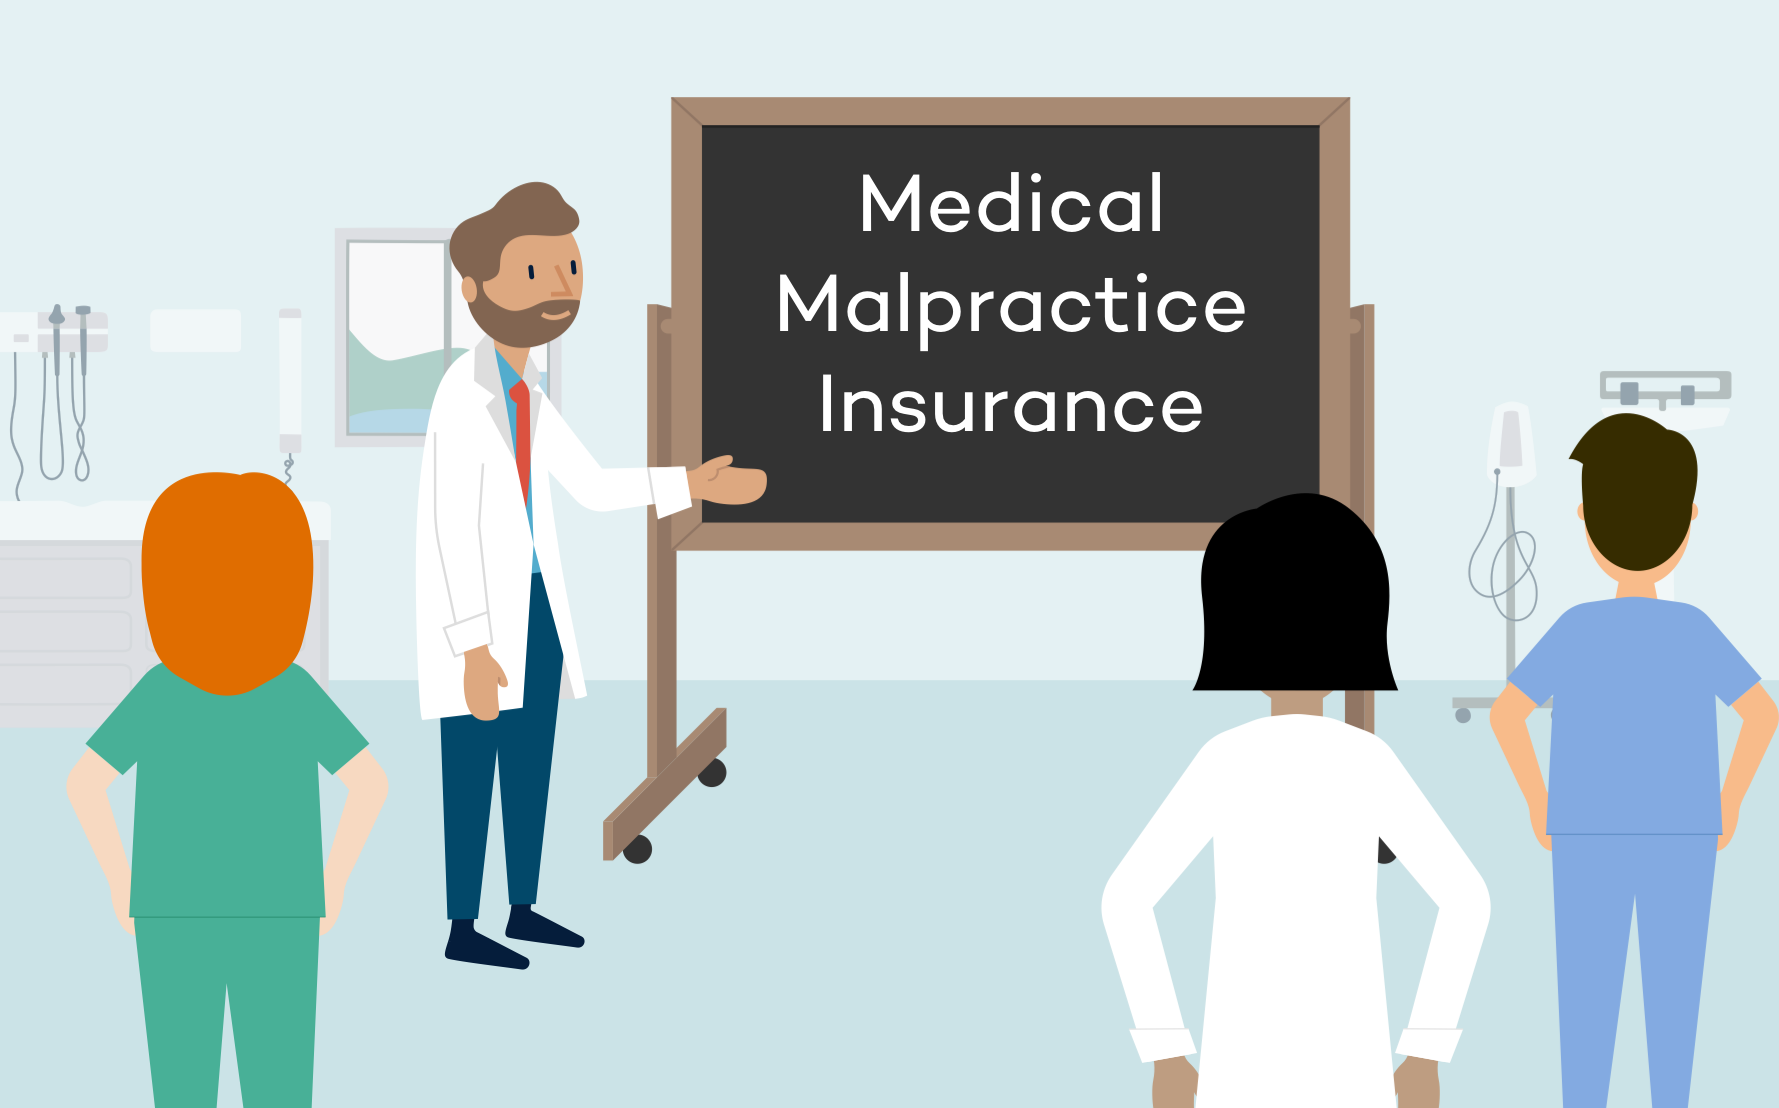 Doctors Are You Covered Understanding Medical Malpractice Insurance By Nomad Health Nomad Health Medium